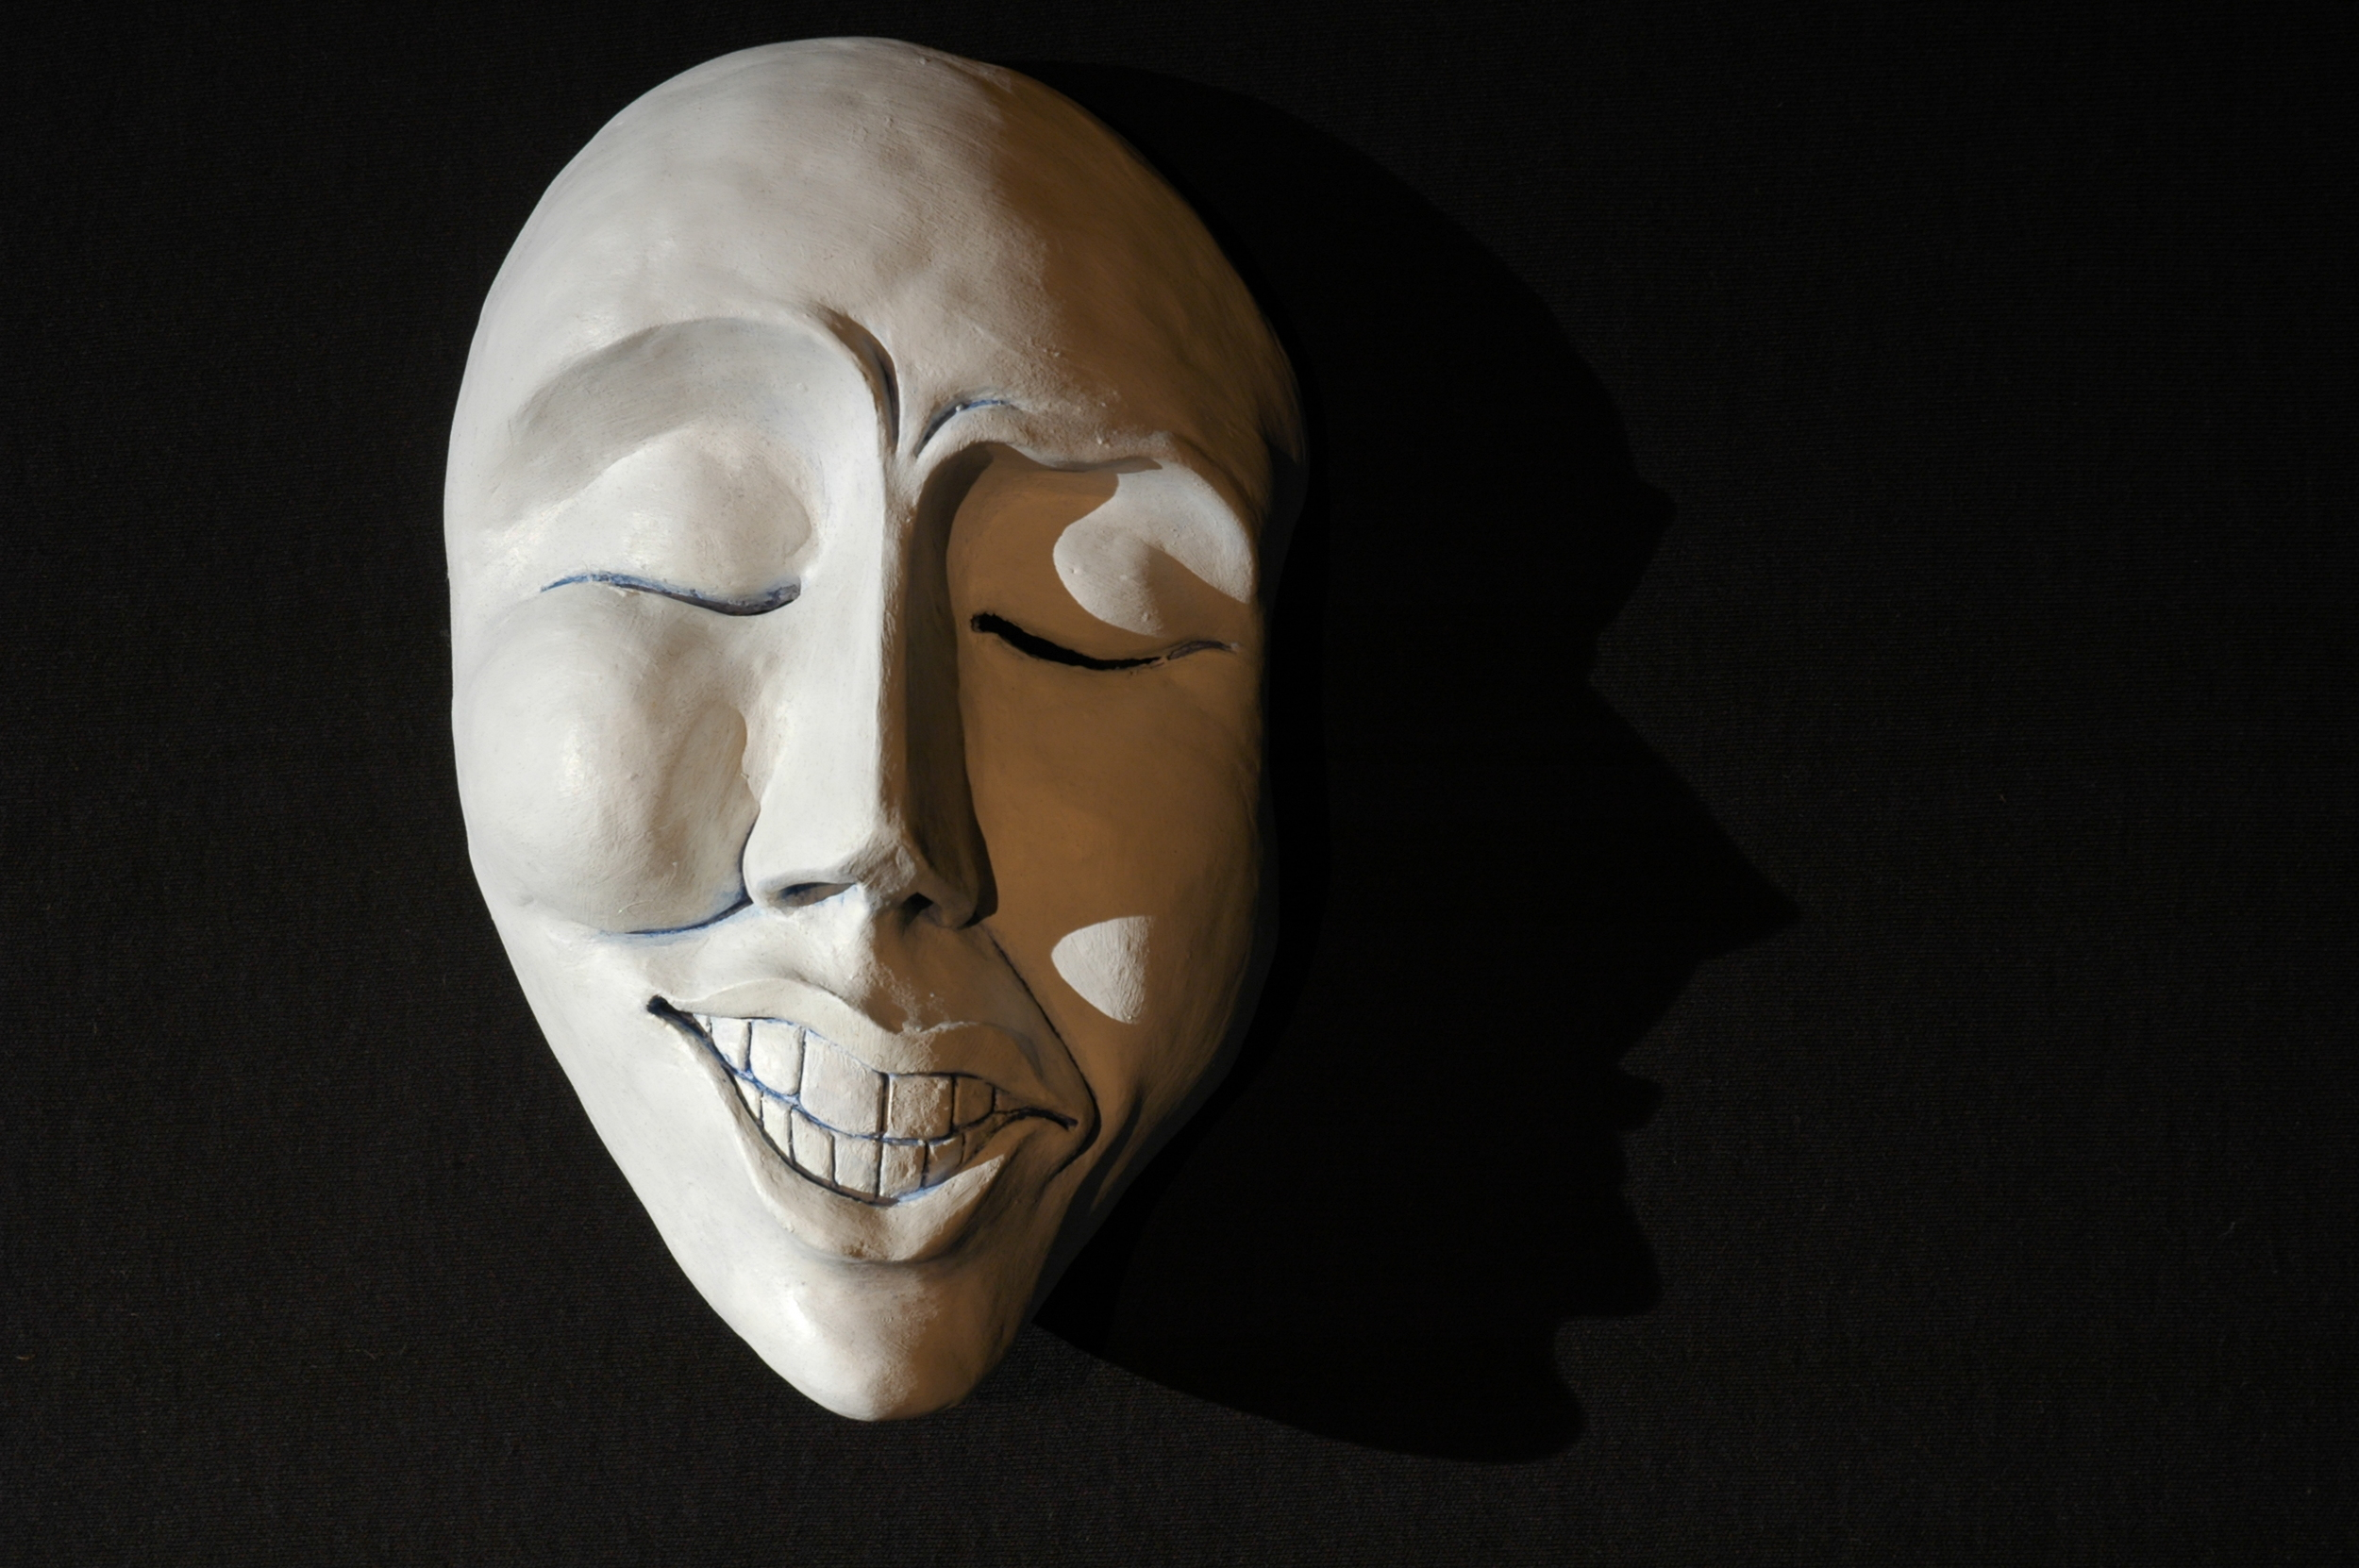 NYC-Face Mask, 2006